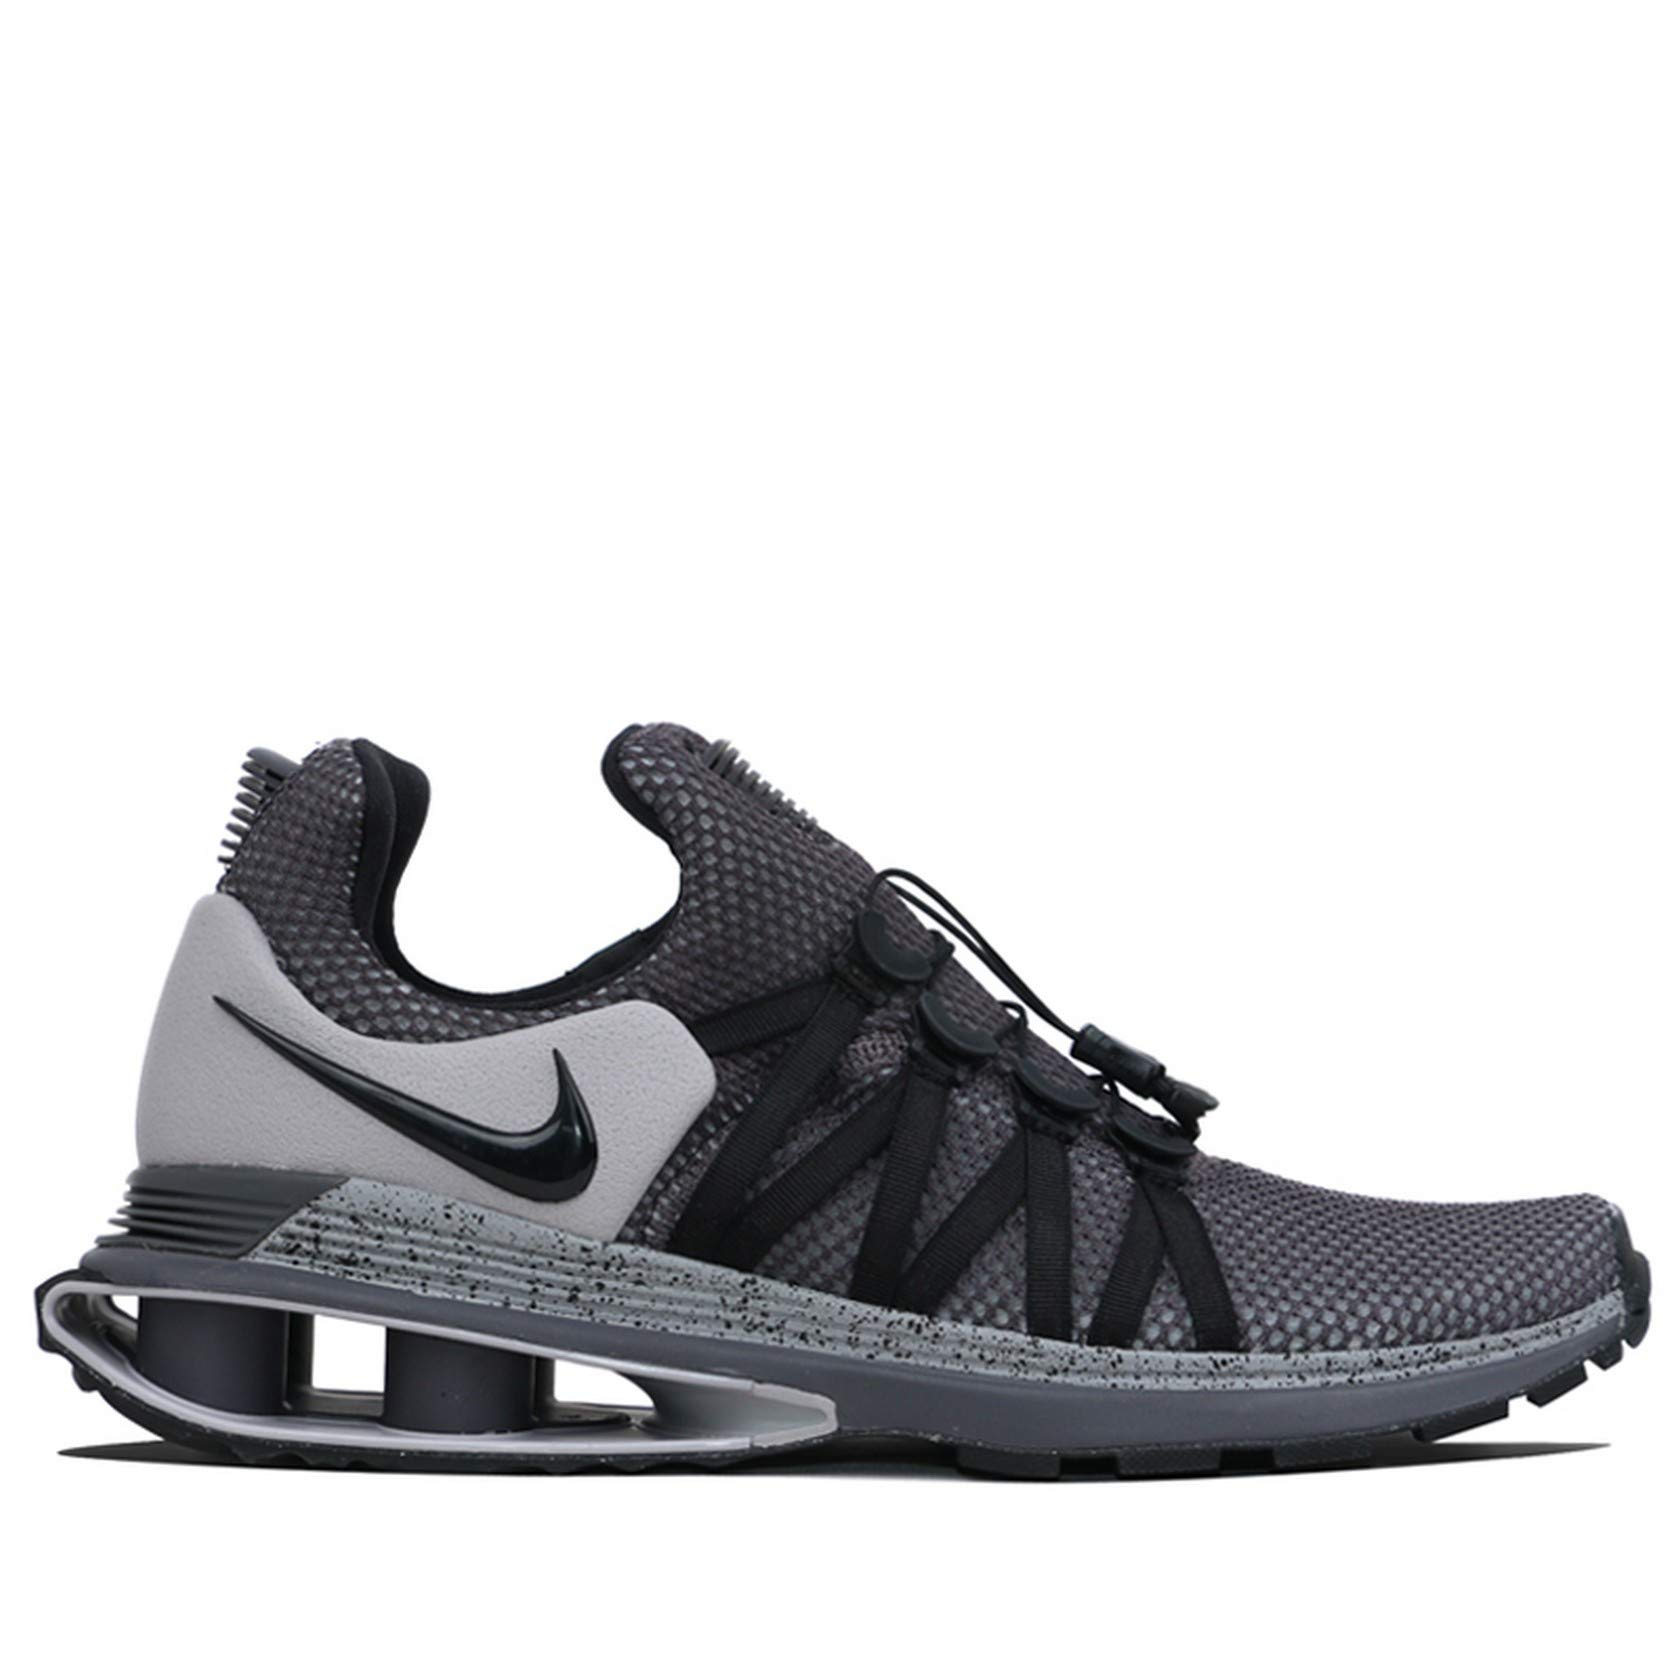 huge discount bcee3 c6ce4 Galleon - Nike Mens Shox Gravity Running Shoes Grey Black Size 10 D(M) US